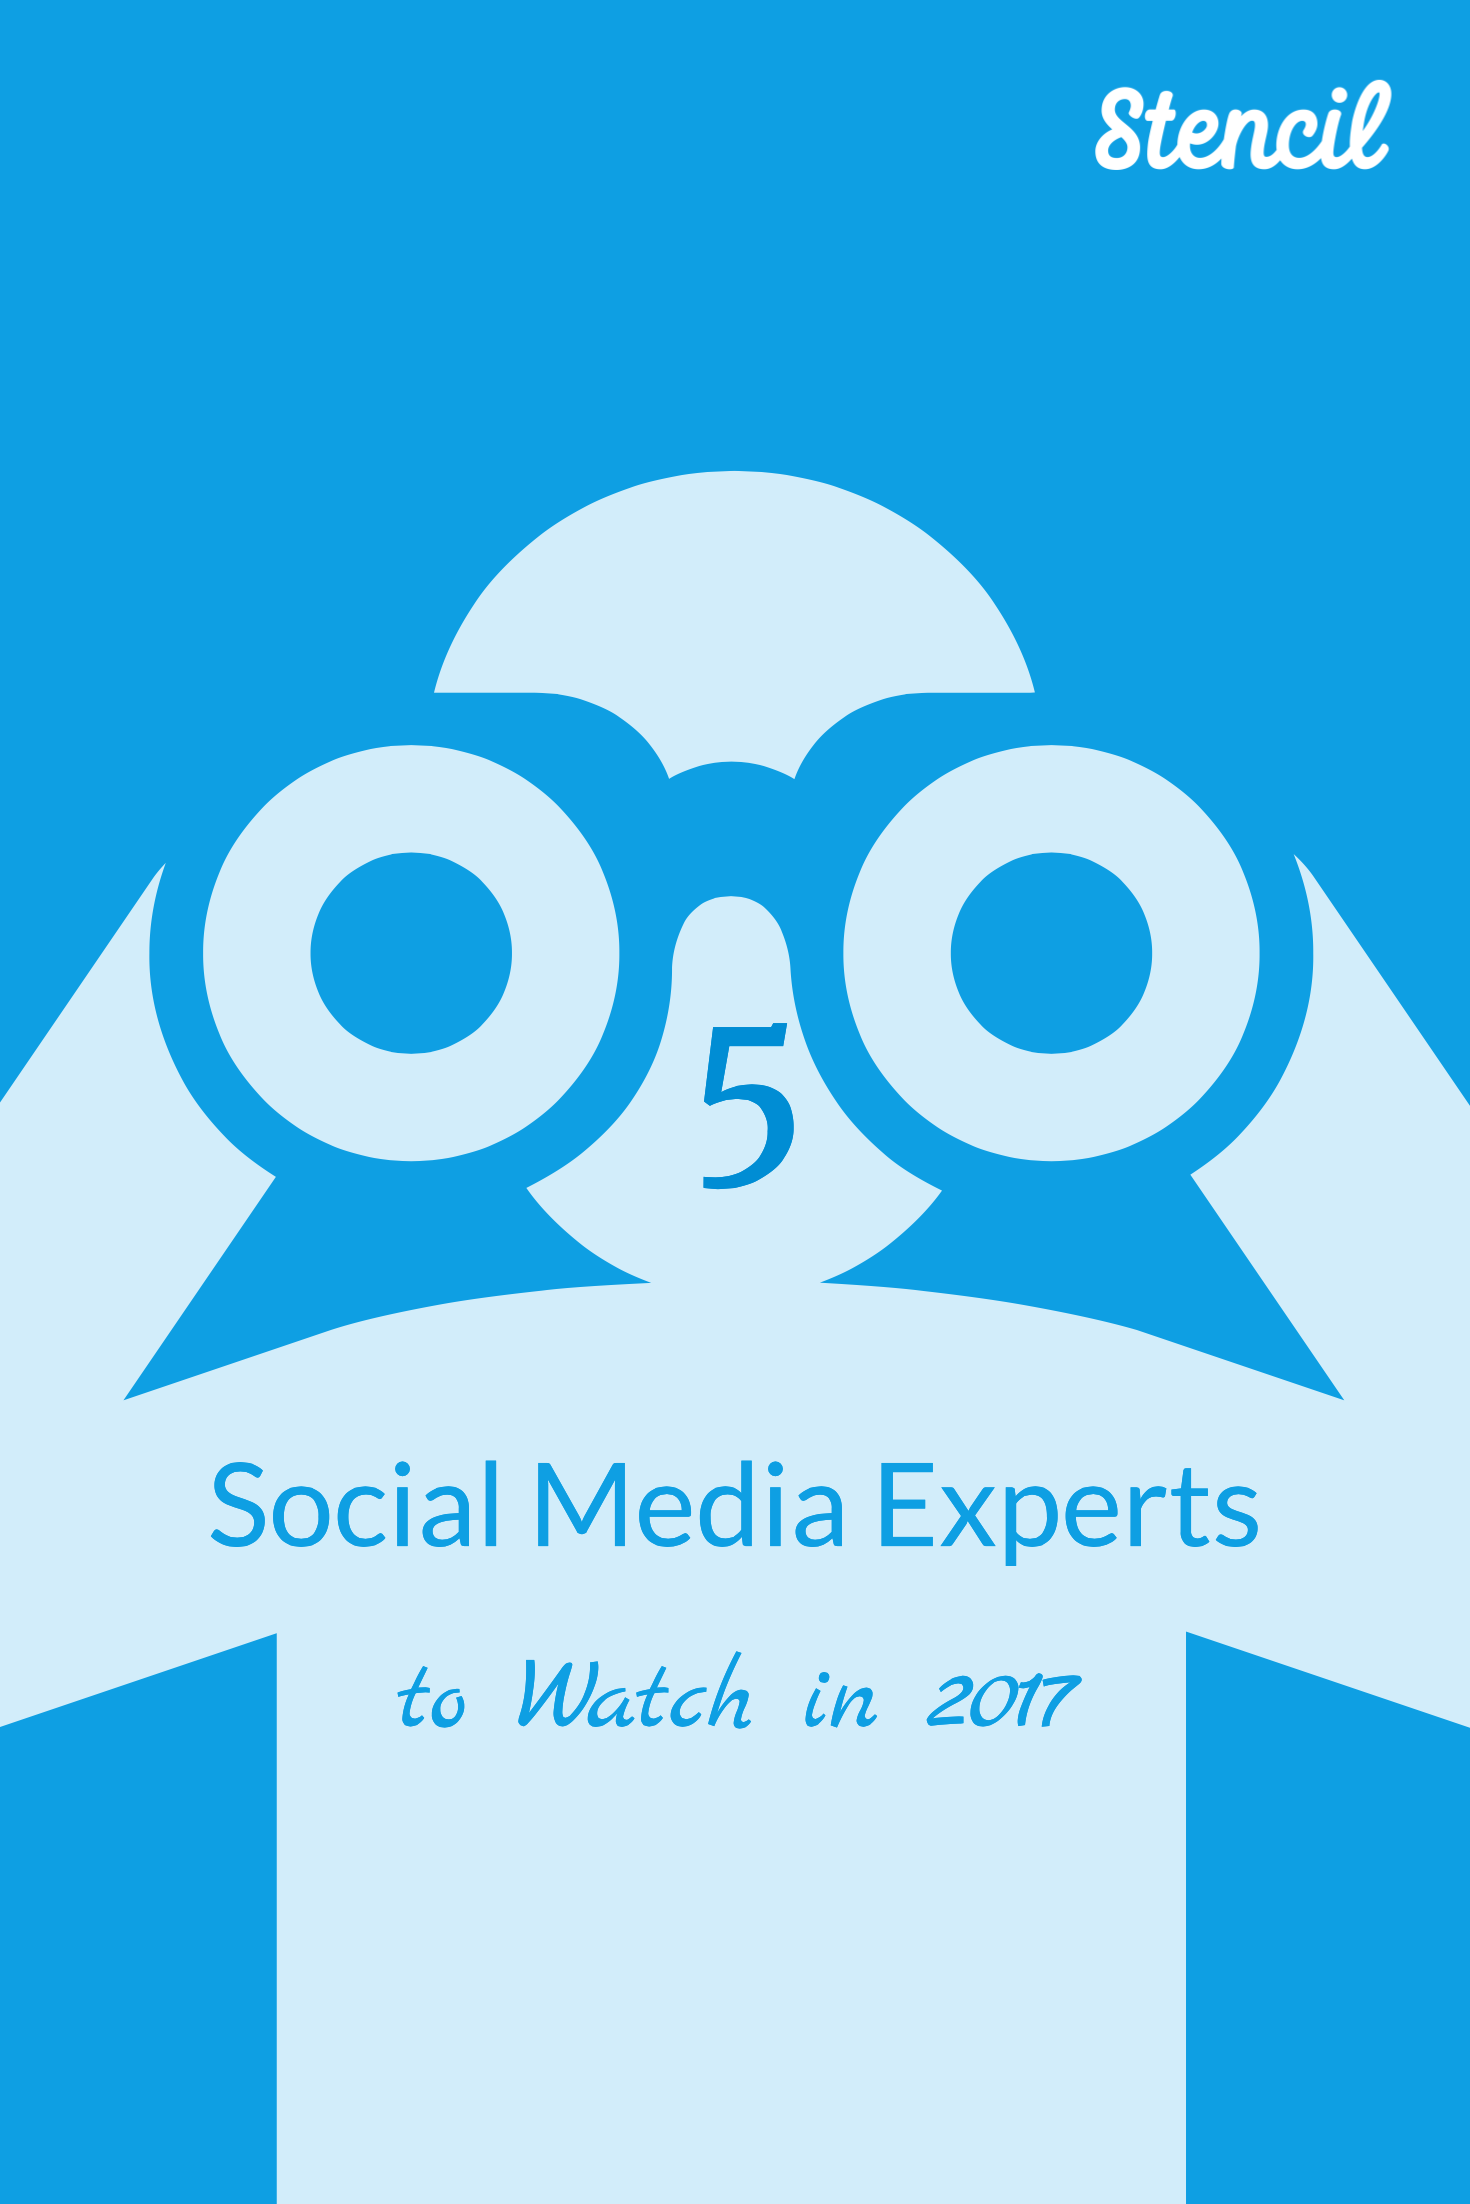 5 social media experts to watch in 2017  - Who can you truly trust for social media advice? Here are five social media experts to help you with Pinterest, Facebook, Twitter, Instagram, and other platforms.